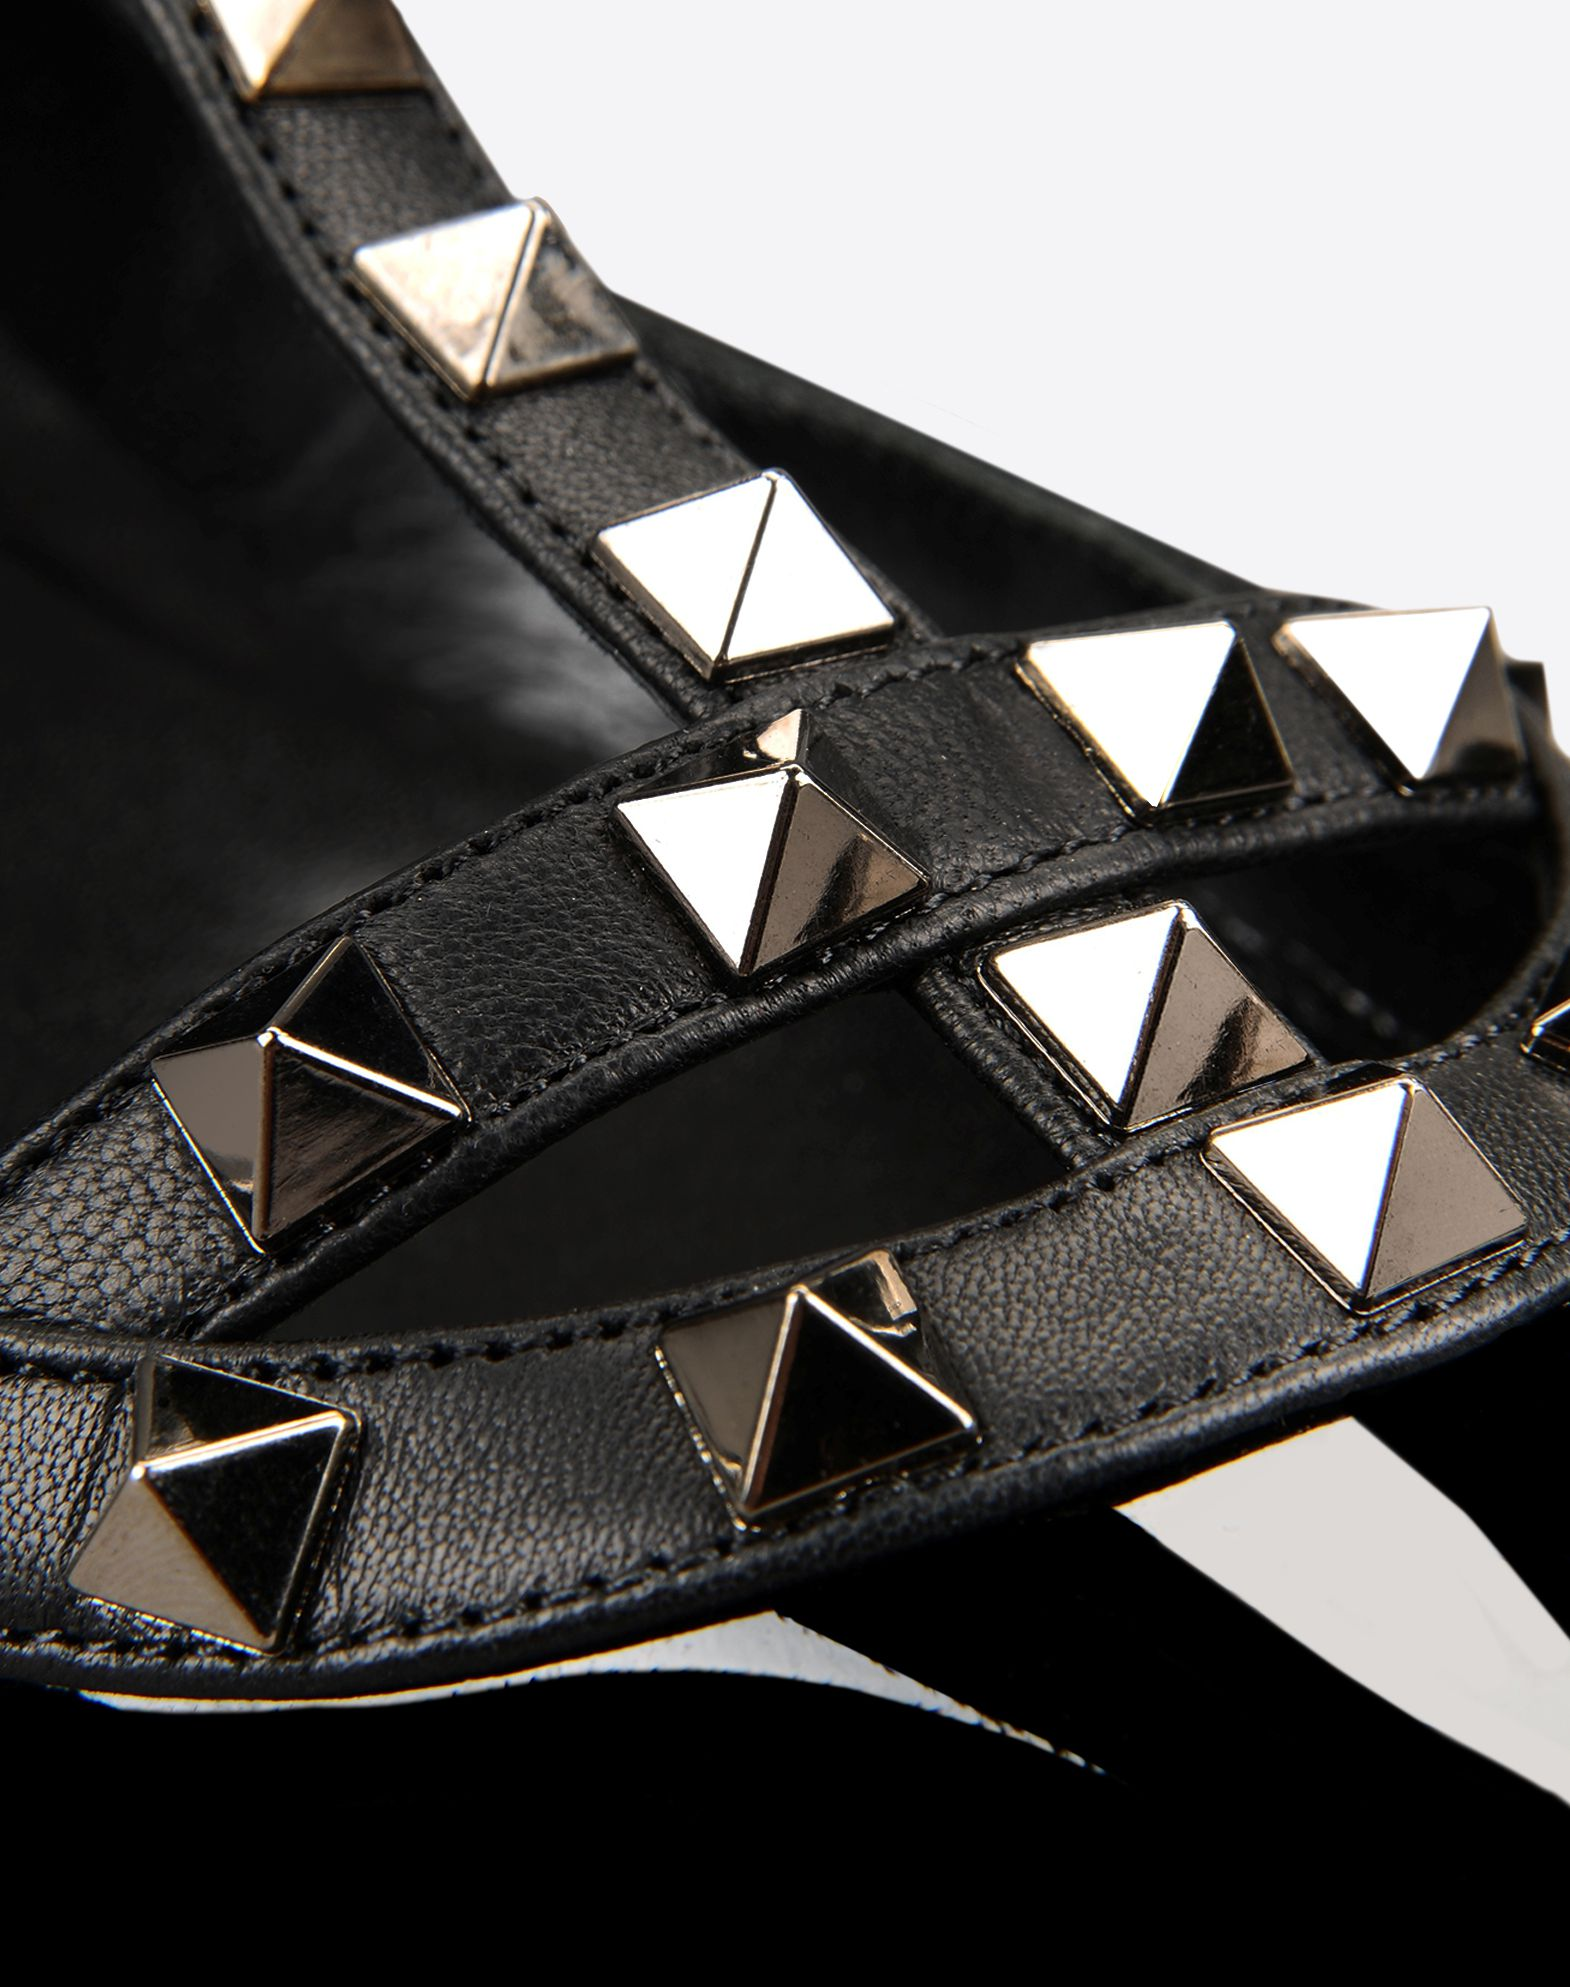 VALENTINO Studs Studs Varnished effect Solid colour Buckling ankle strap closure Leather sole Narrow toeline  44639580cr